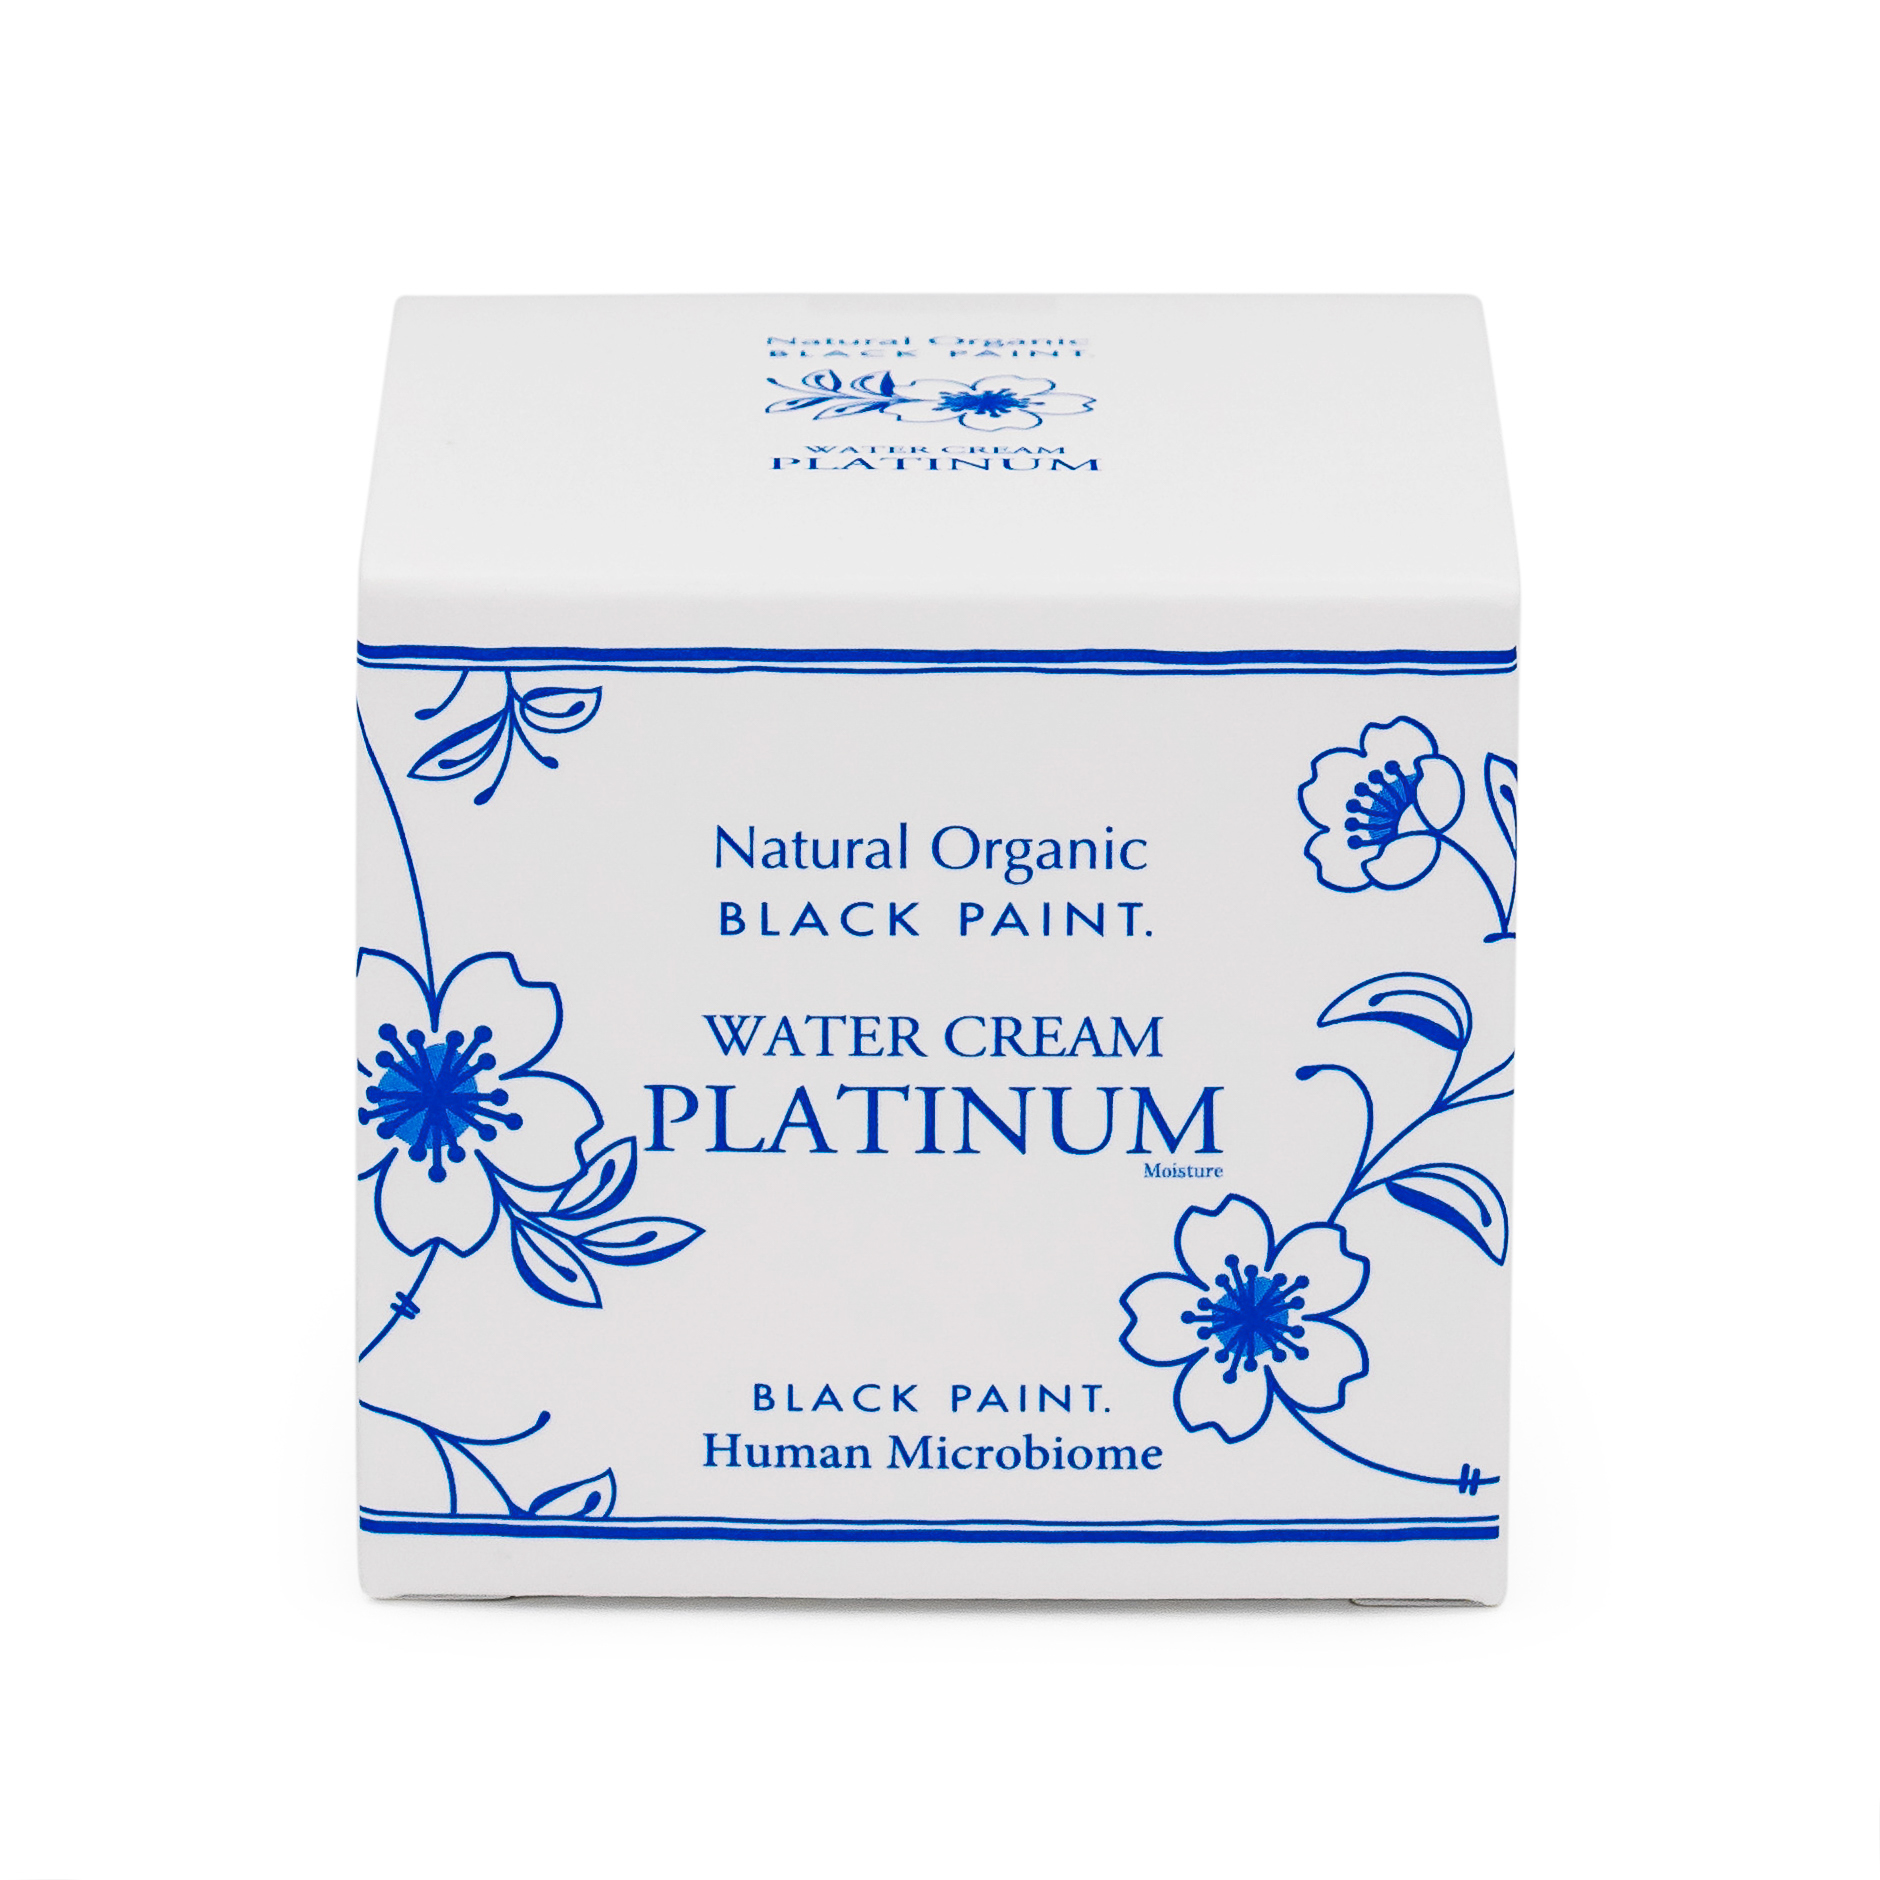 Water Cream Platinum 25g with Human Microbiome - box front